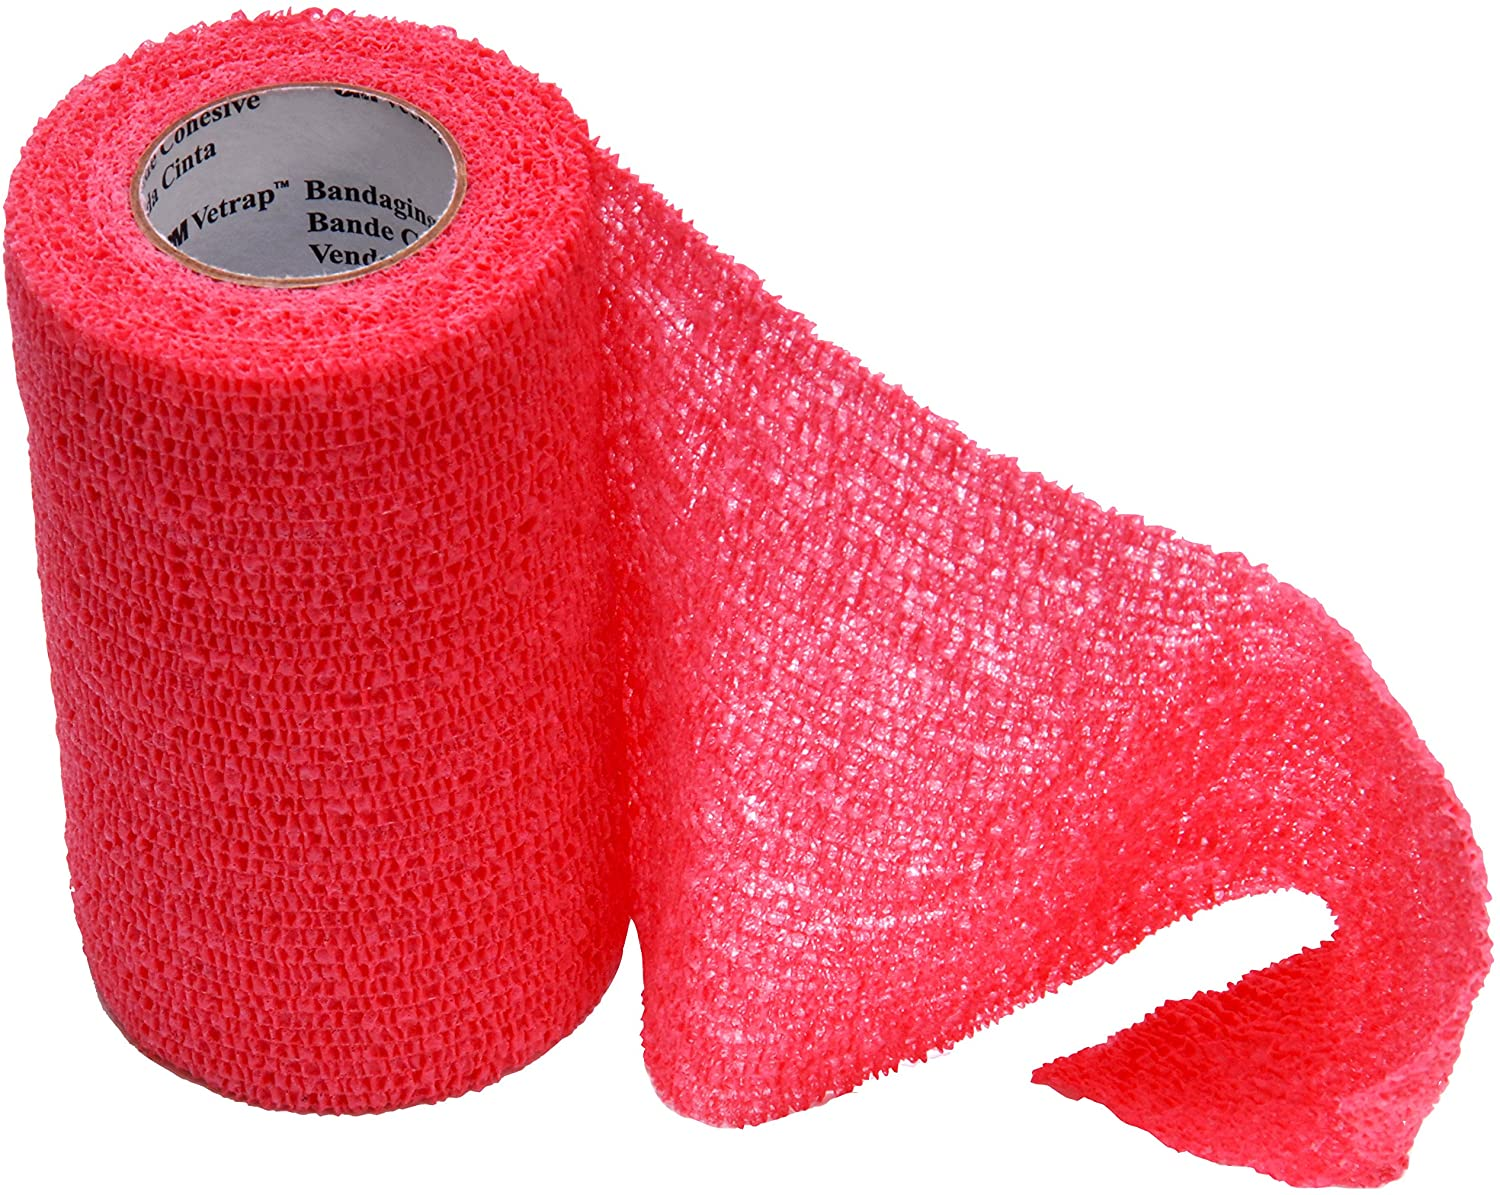 3M Vetrap 4-Inch Bandaging Tape, 4-Inch x 5 Yards, Red (12 Rolls)